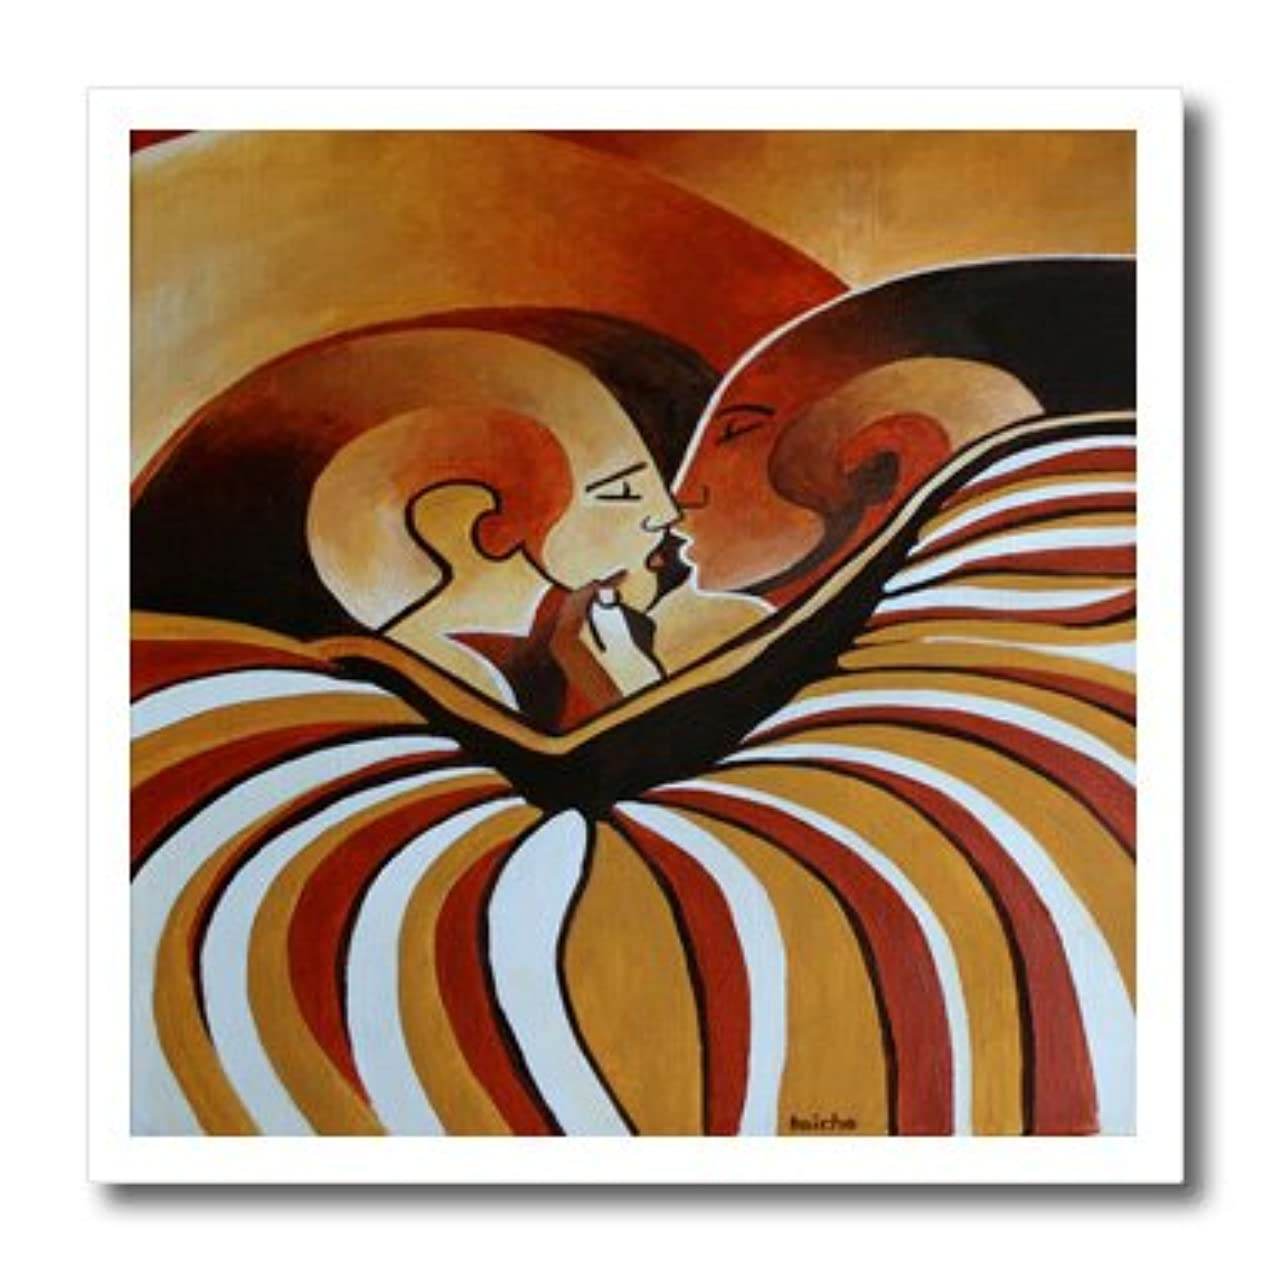 3dRose ht_128358_3 Touched by Africa African Themed Art of a Man and Woman Kissing Iron on Heat Transfer for White Material, 10 by 10-Inch